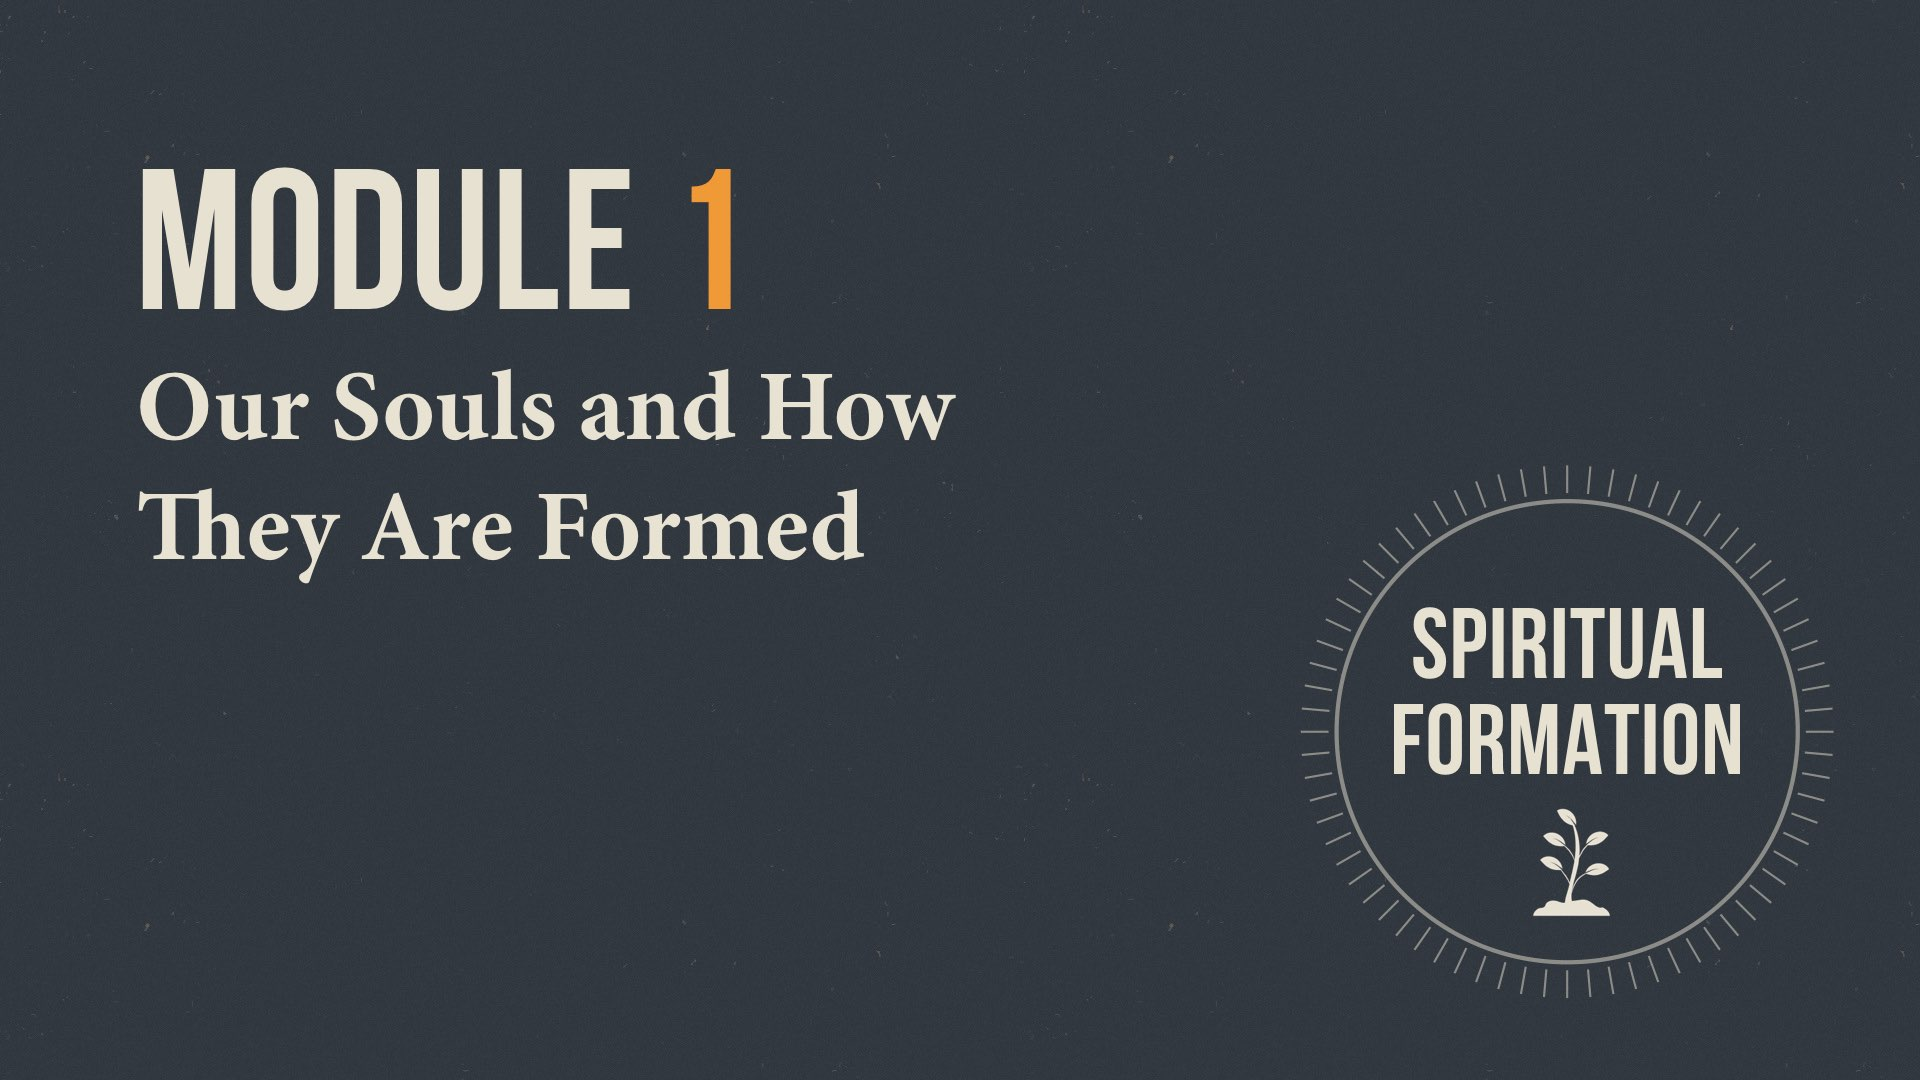 Module 1 Title Slide - Our Souls and How They Are Formed